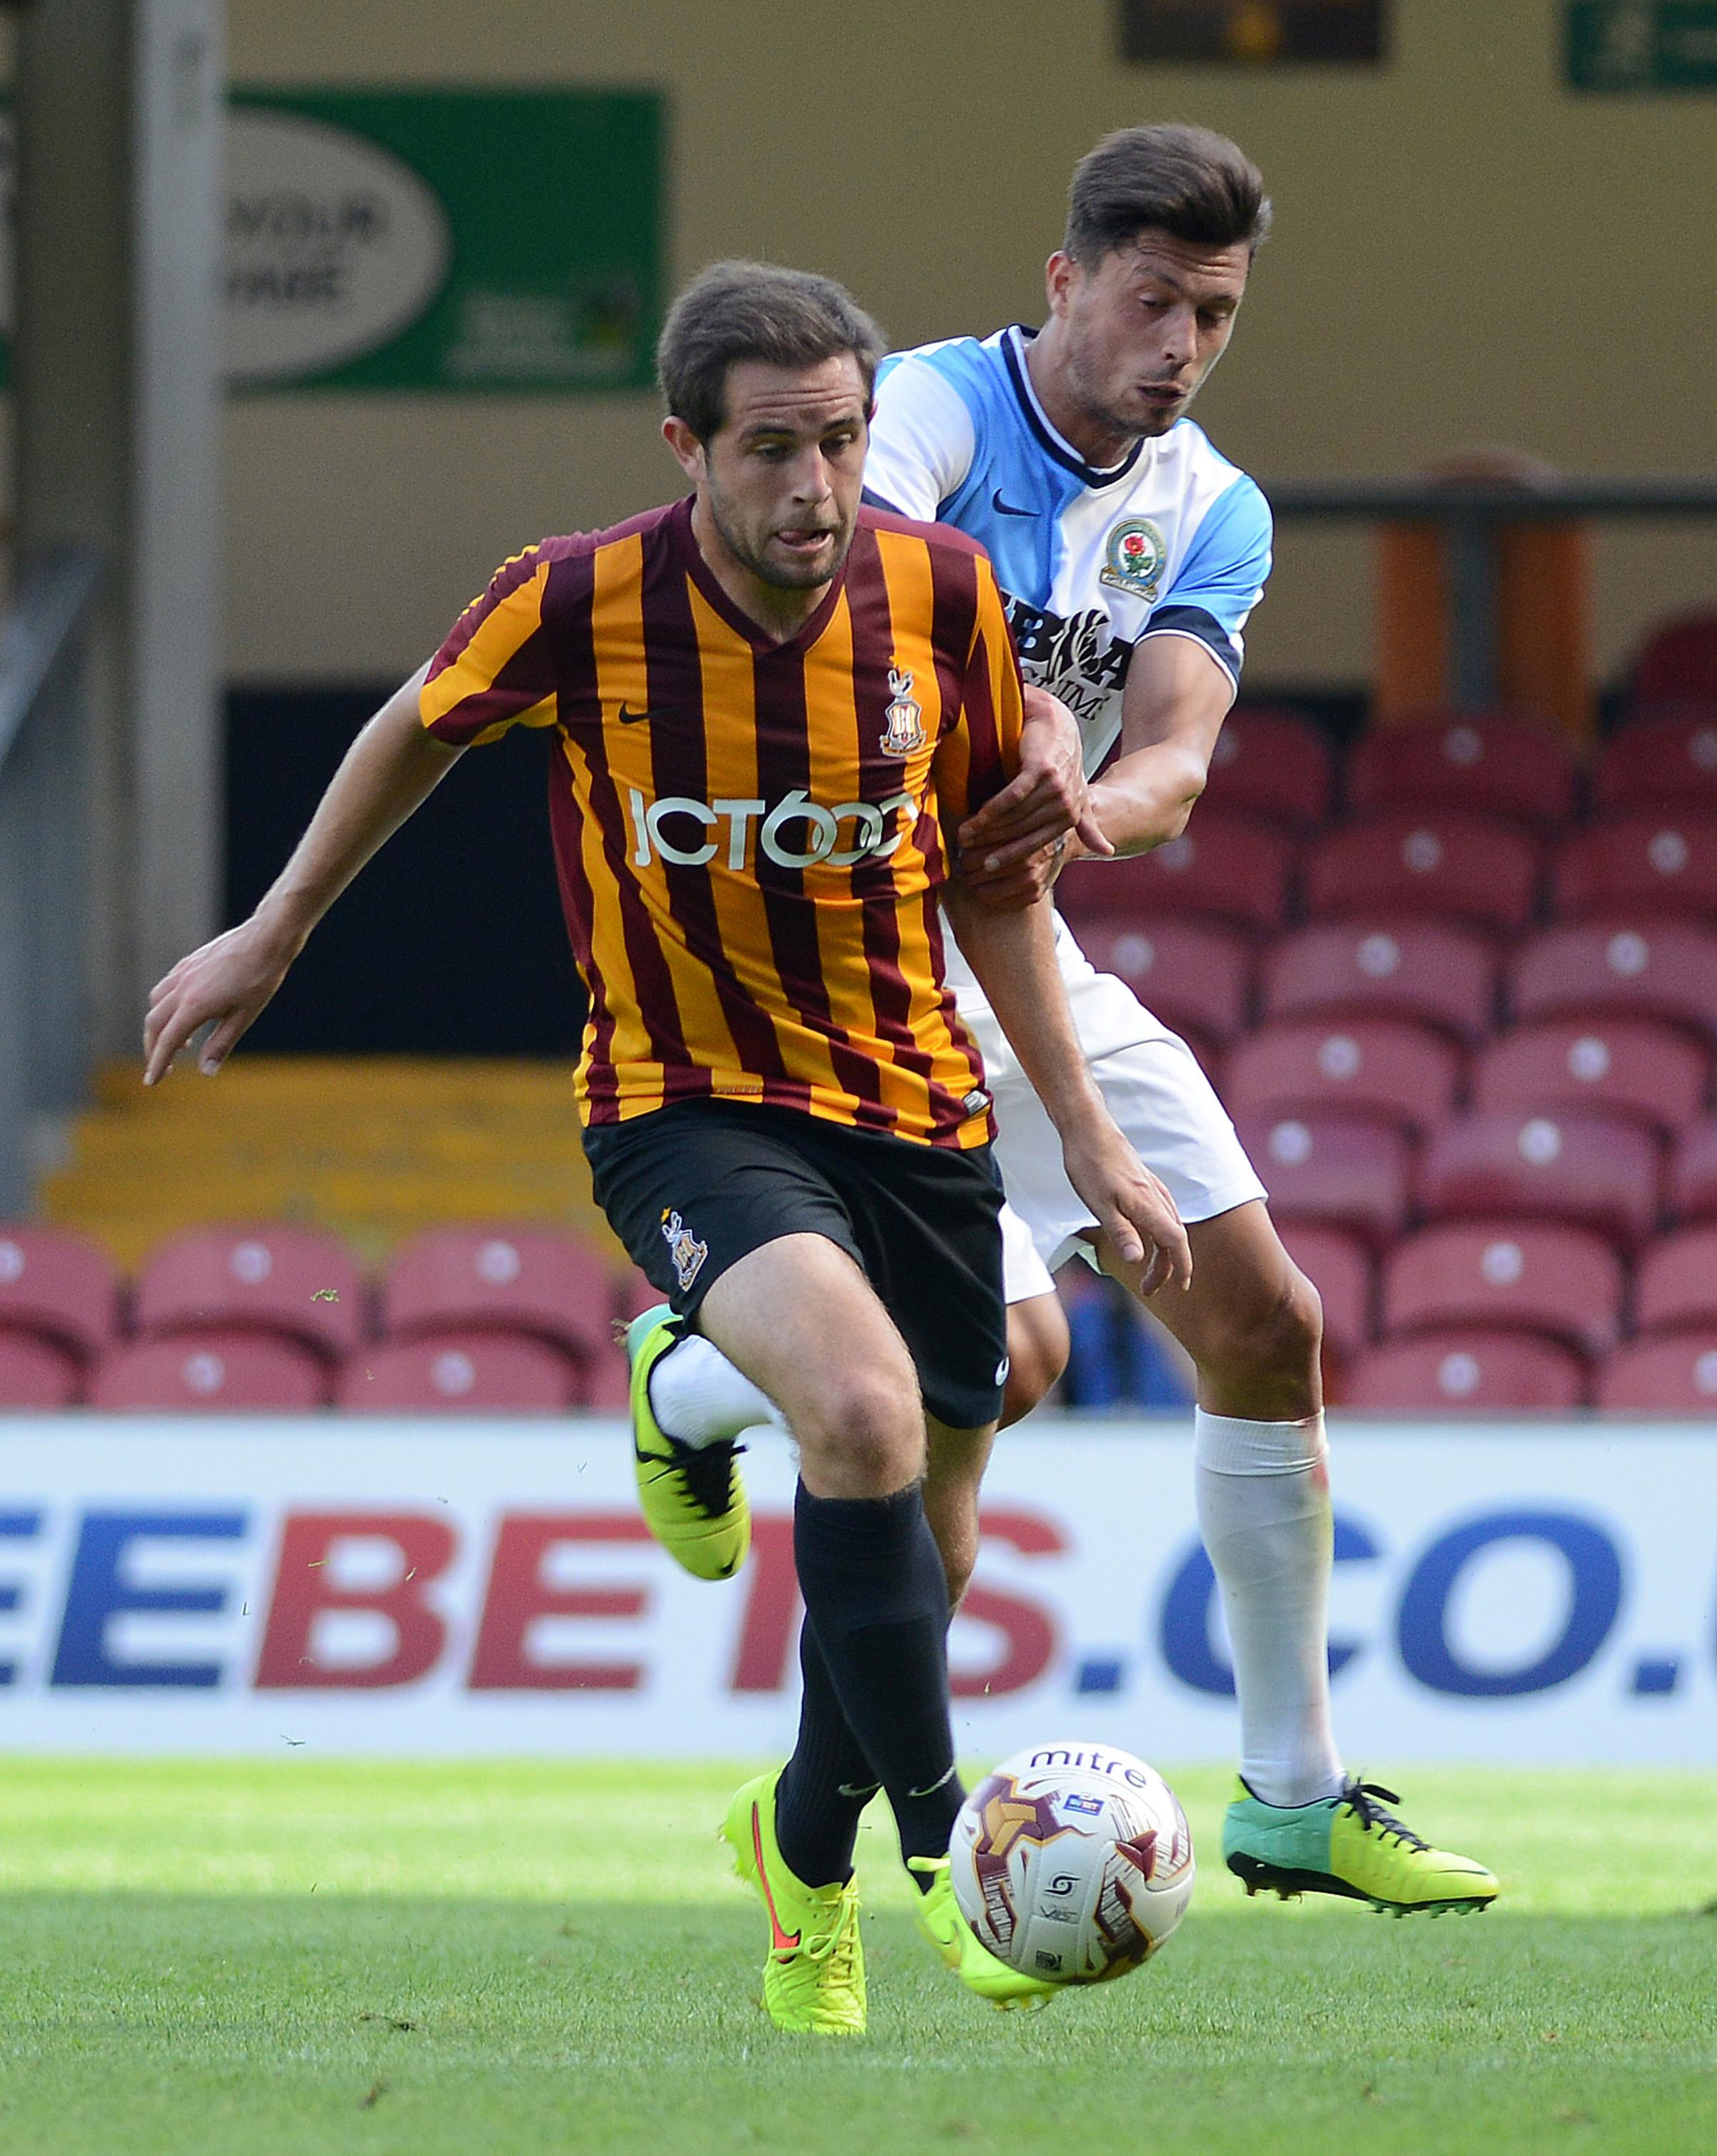 Bantams boss Phil Parkinson happy to get Ben Williams for keeps